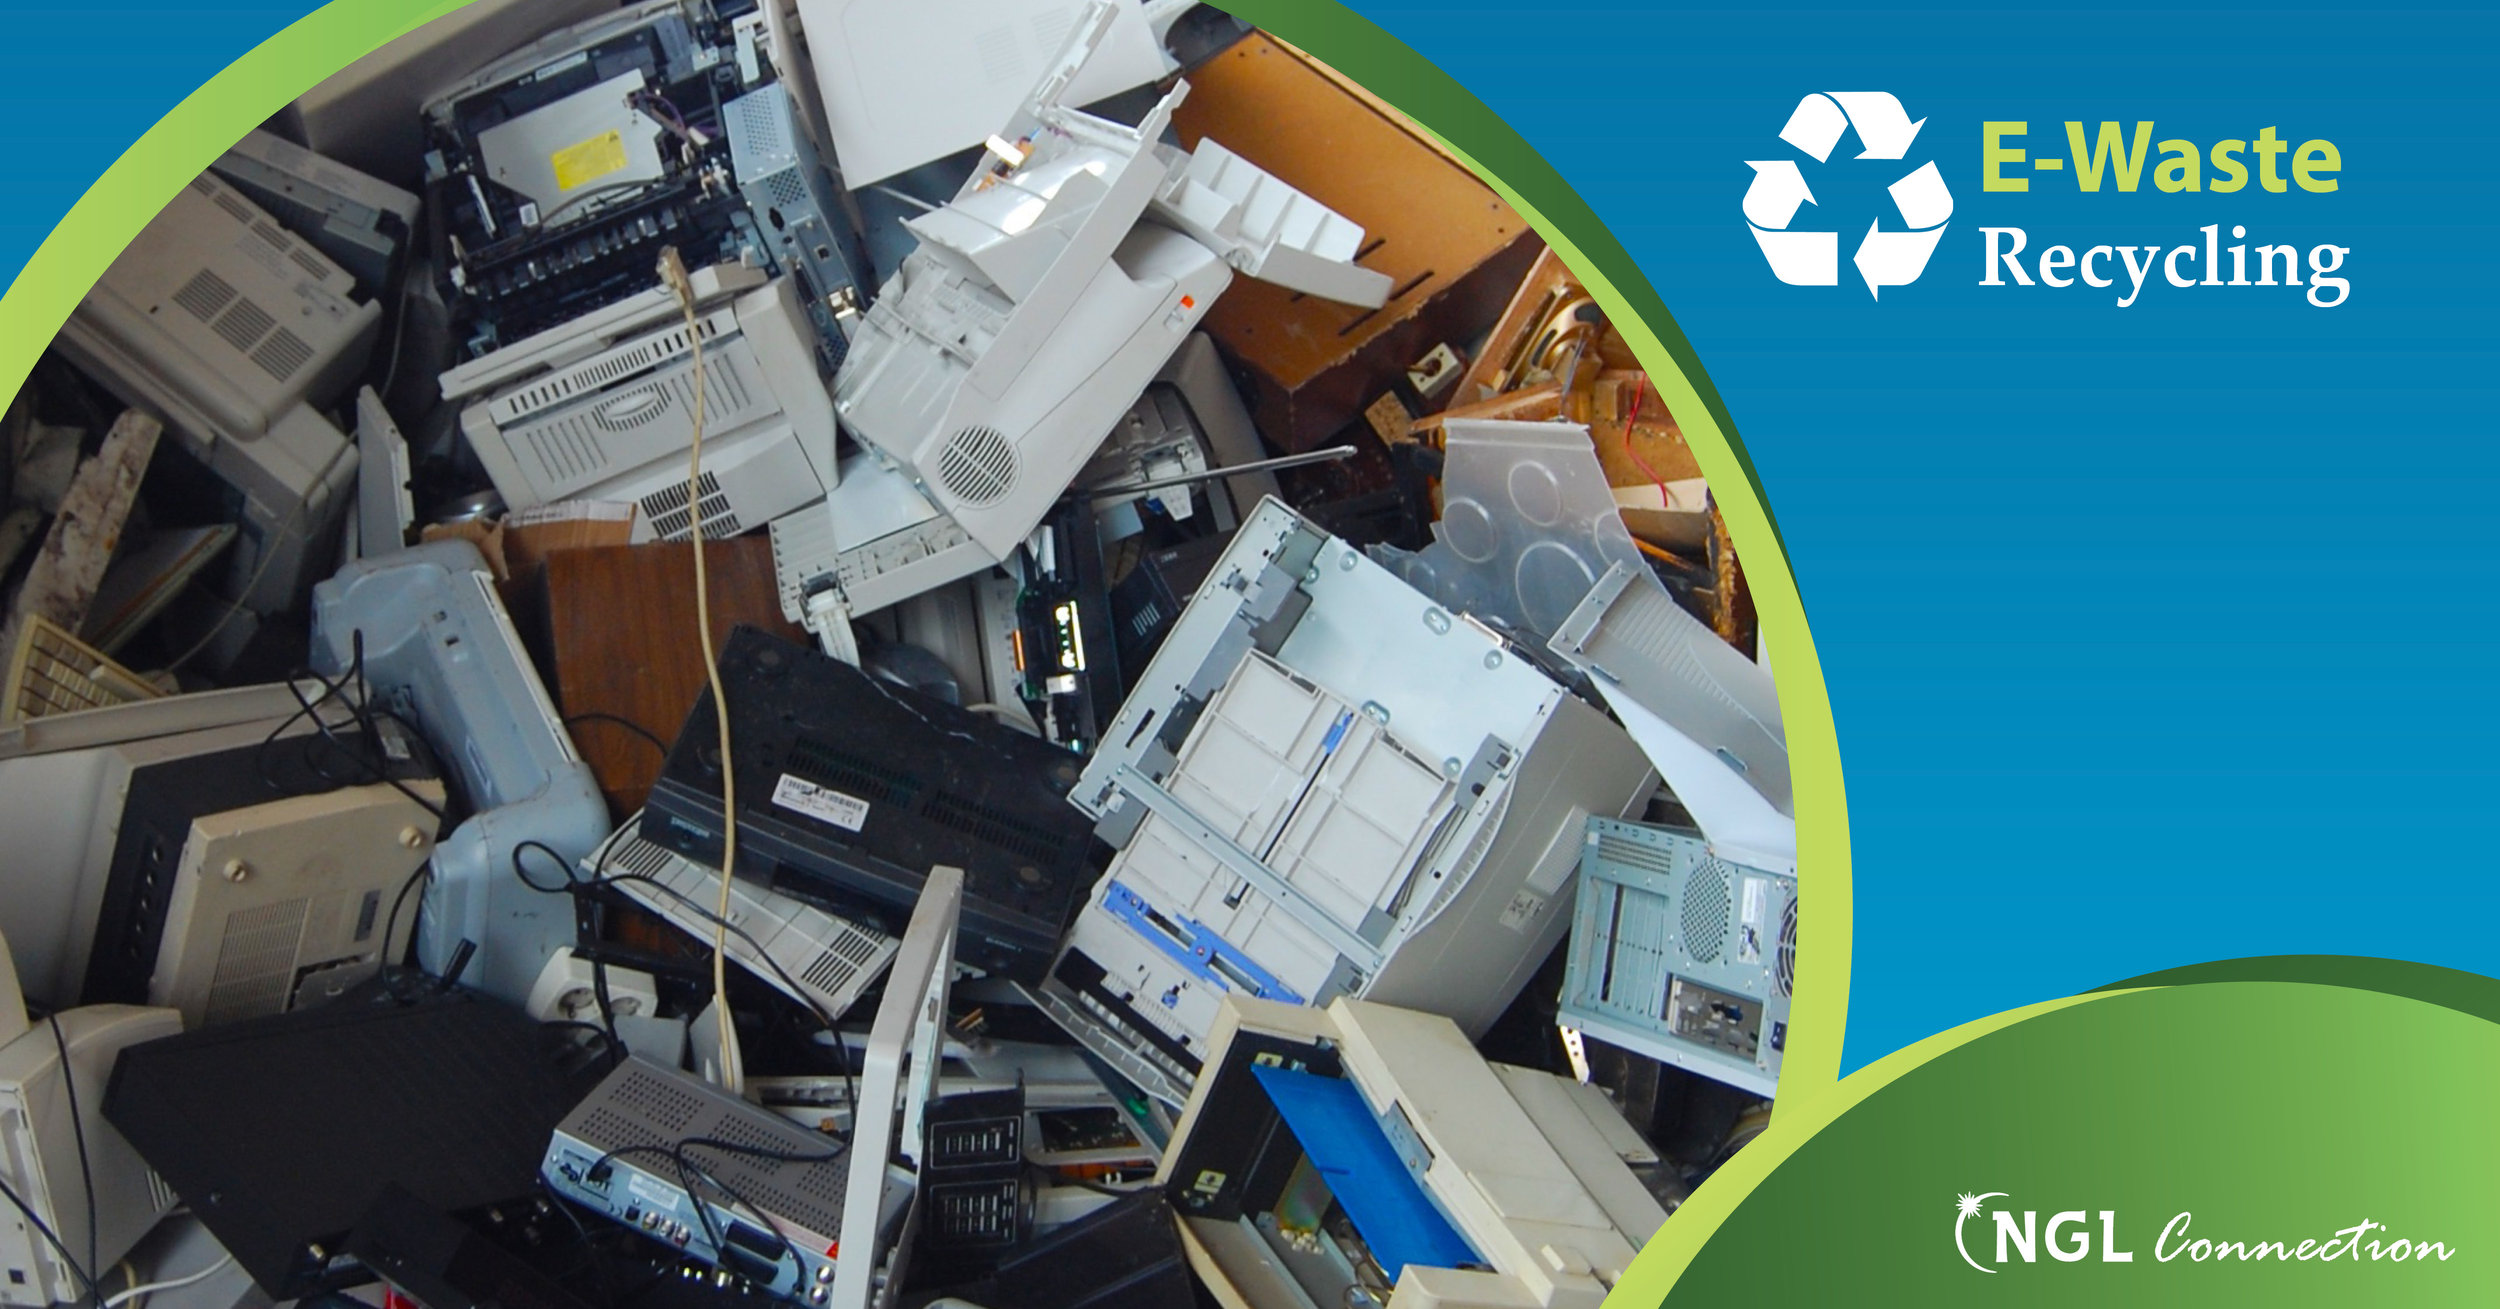 May 2019 - E-Waste Recycling Cover2.jpg